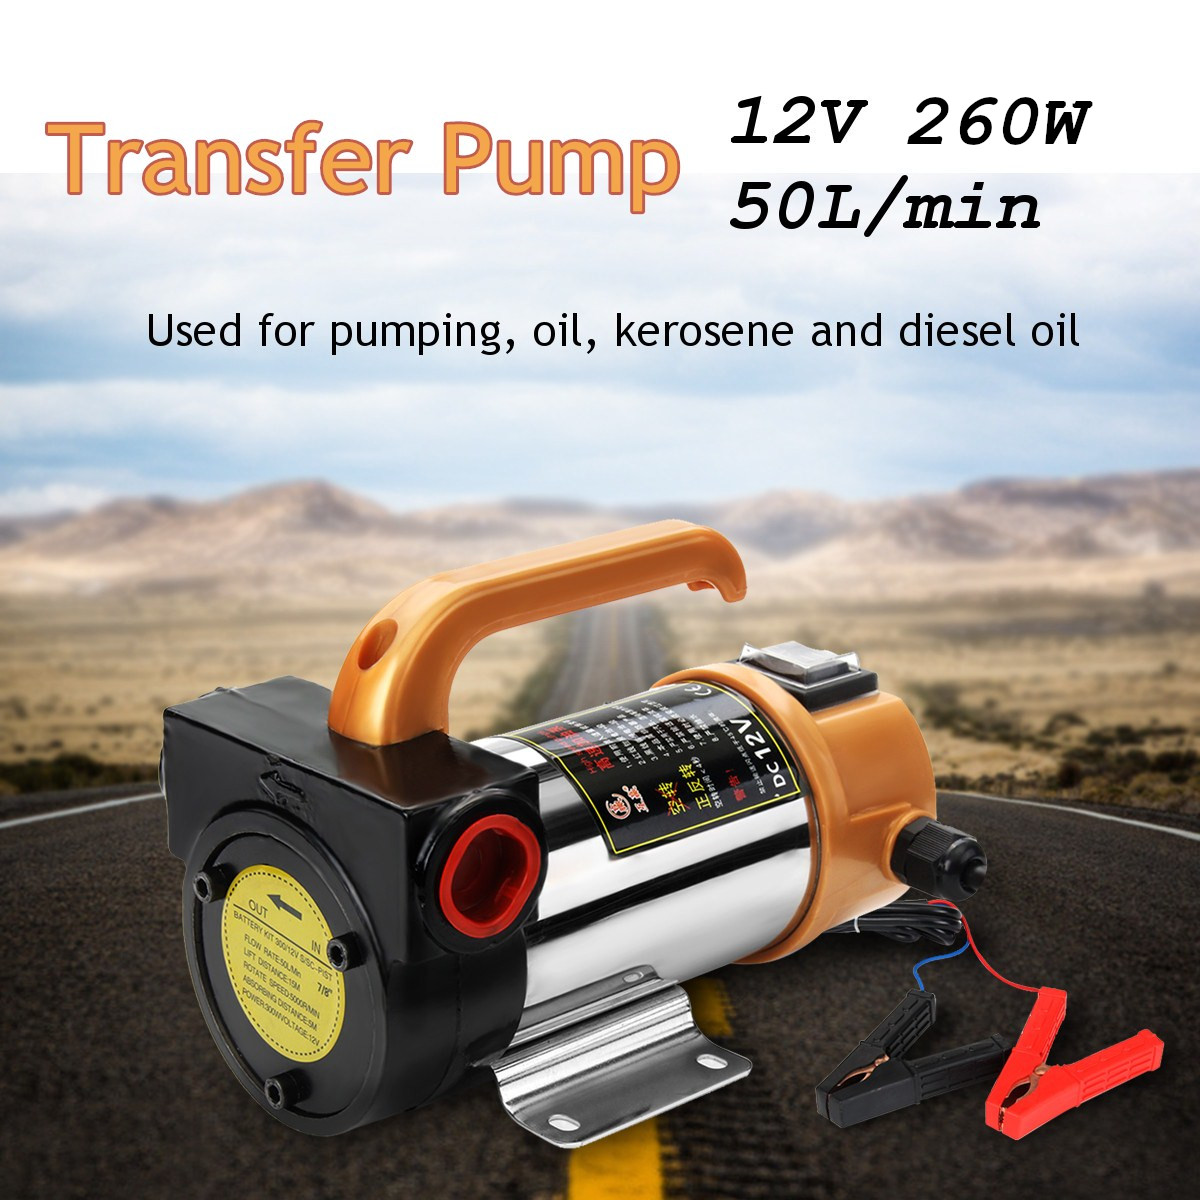 12V 260W Car Engine Portable for Diesel Fuel Oil Transfer Pump Self Priming Oil Pump 50L/Min 550w portable oil pump self priming 220v fuel oil diesel pump with ex motor